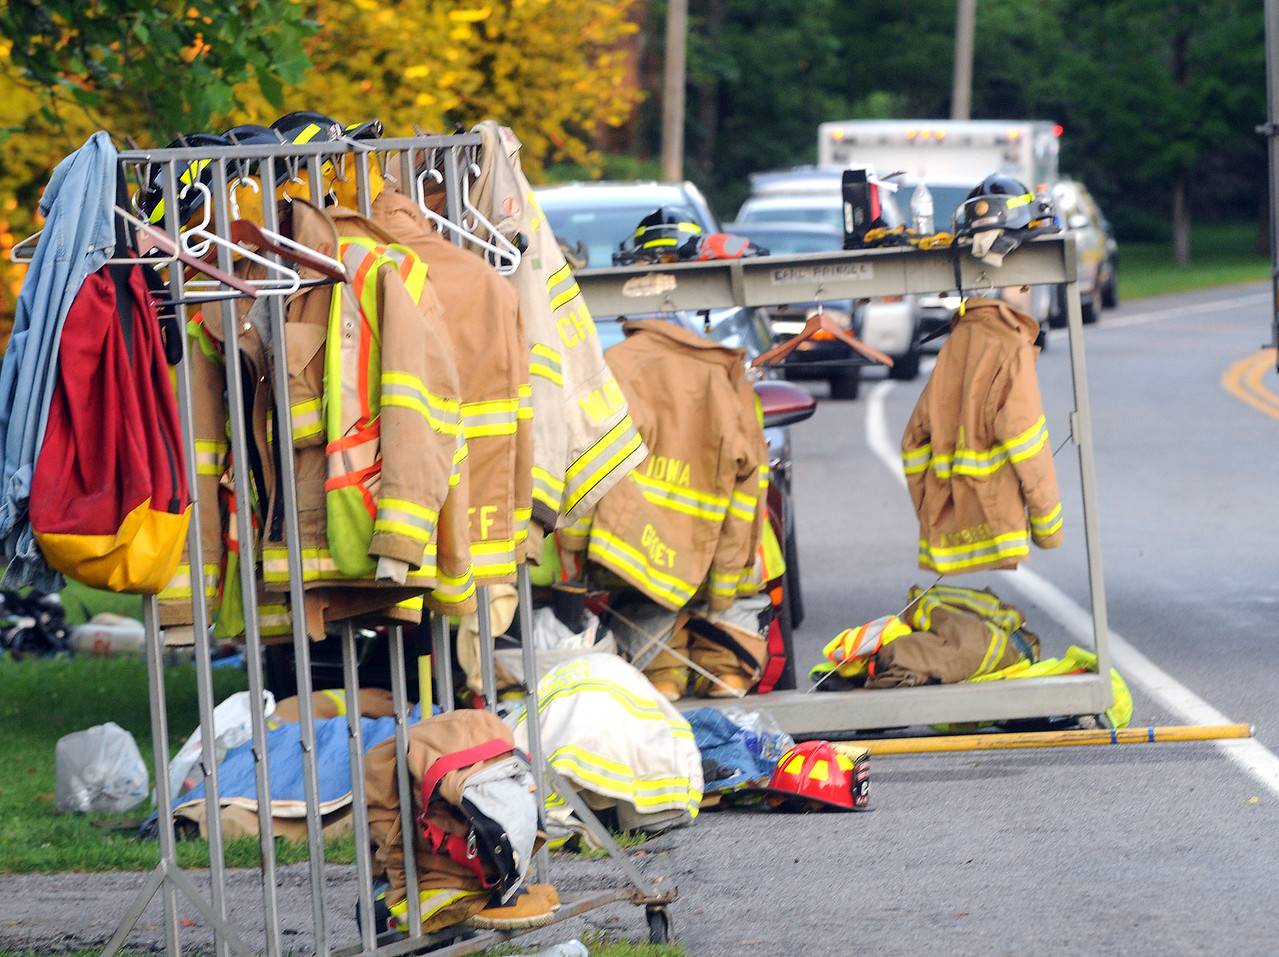 Jack Haley/Messenger Post Media<br /> Fire trucks and firefighter gear was removed the the burning building during the early morning fire.